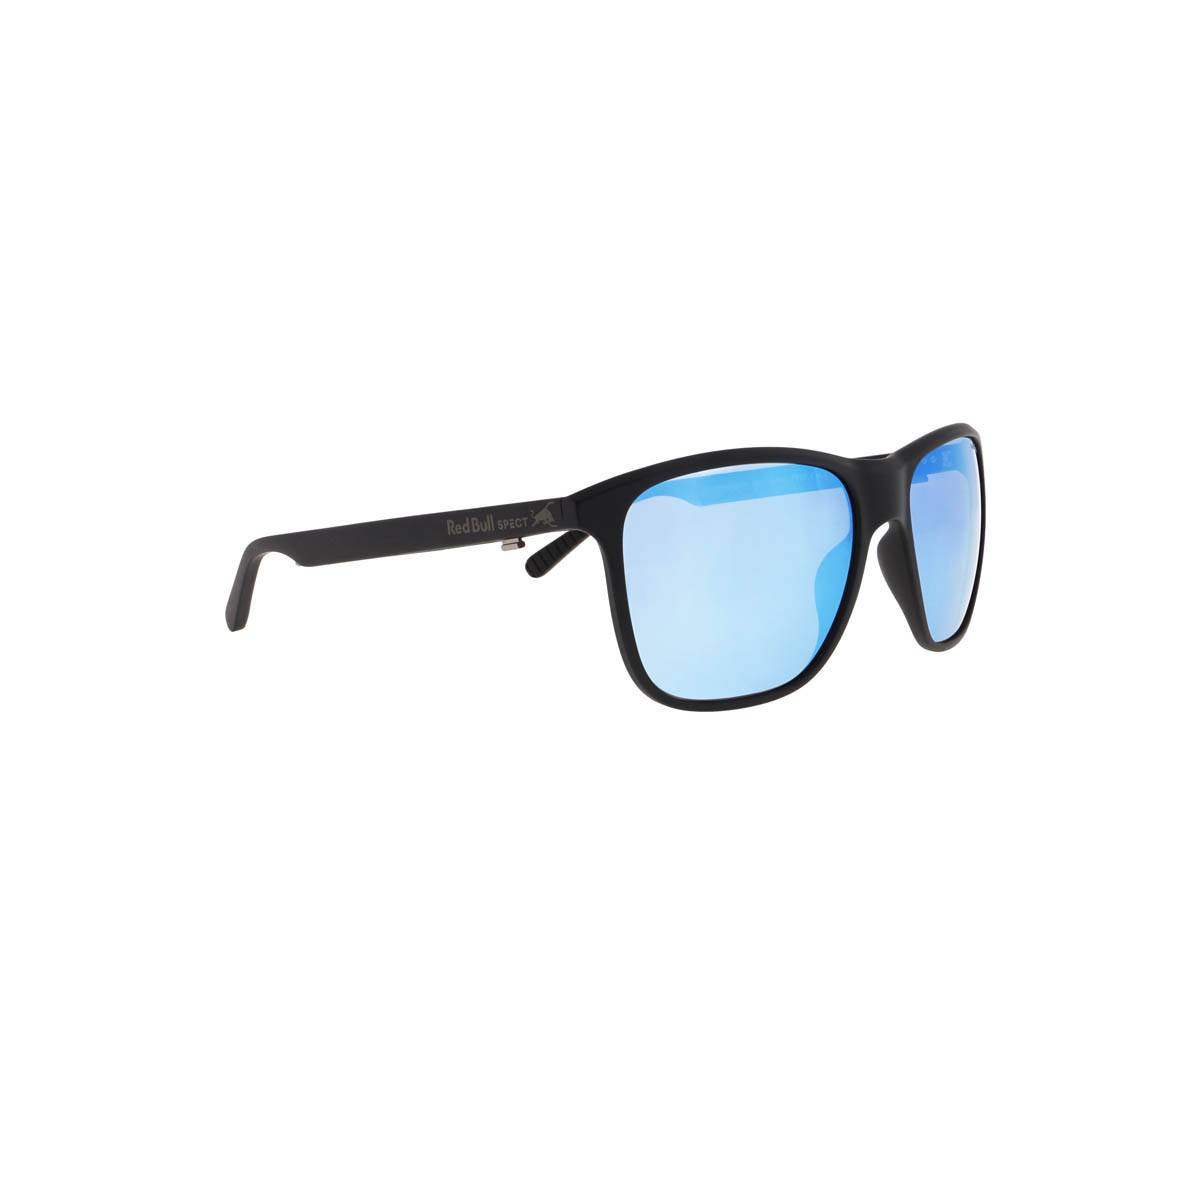 Bull REACH Occhiali da sole Black Smoke Ice Blue